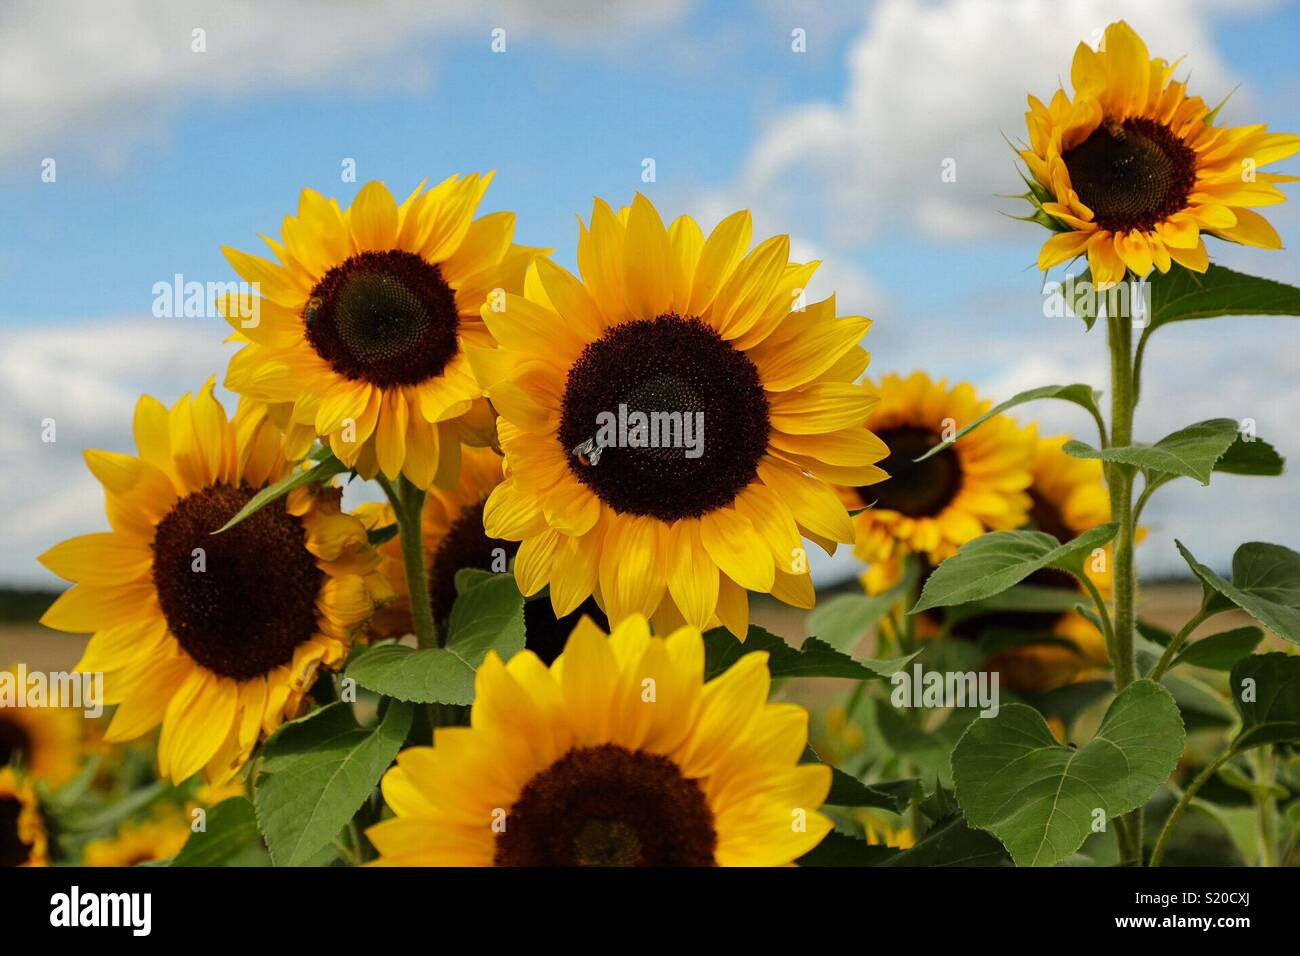 Beautiful Sunflowers Watching Out For The Sun Stock Photo 311026090